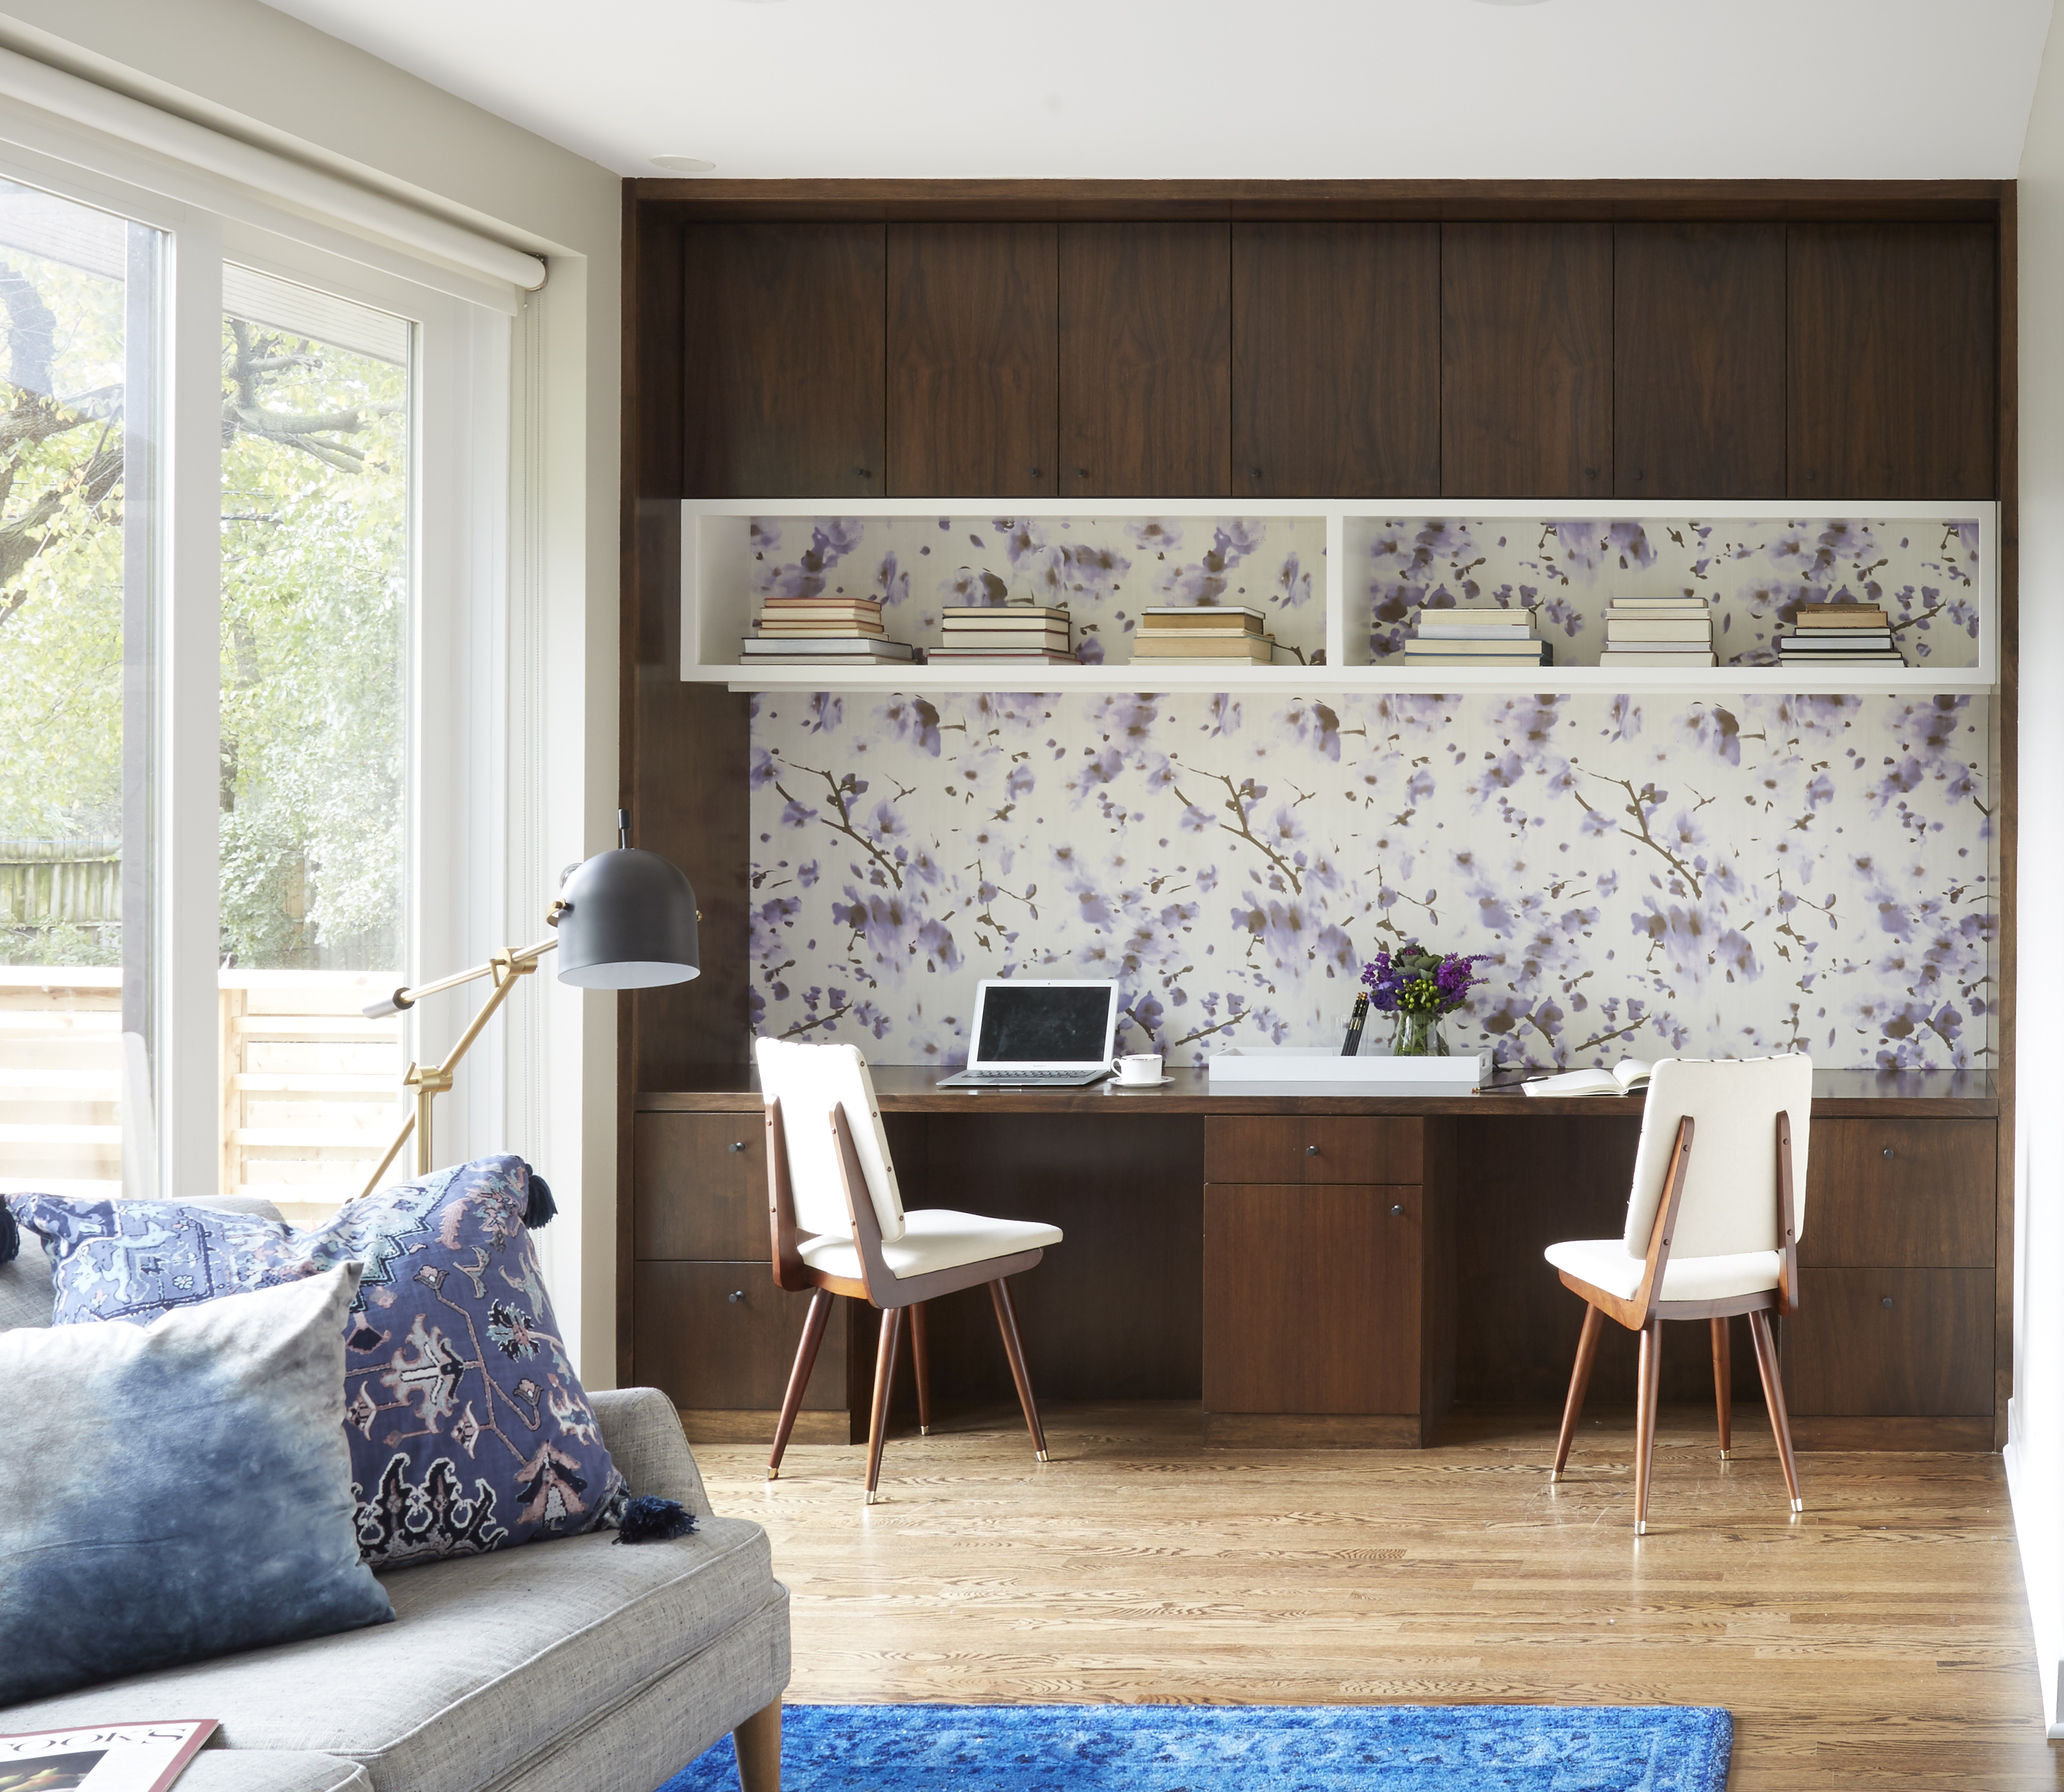 home designers richmond for concept on cabinet design table ideas and amazing firms enjoyable cool files best custom kitchen new coffee interior va picture